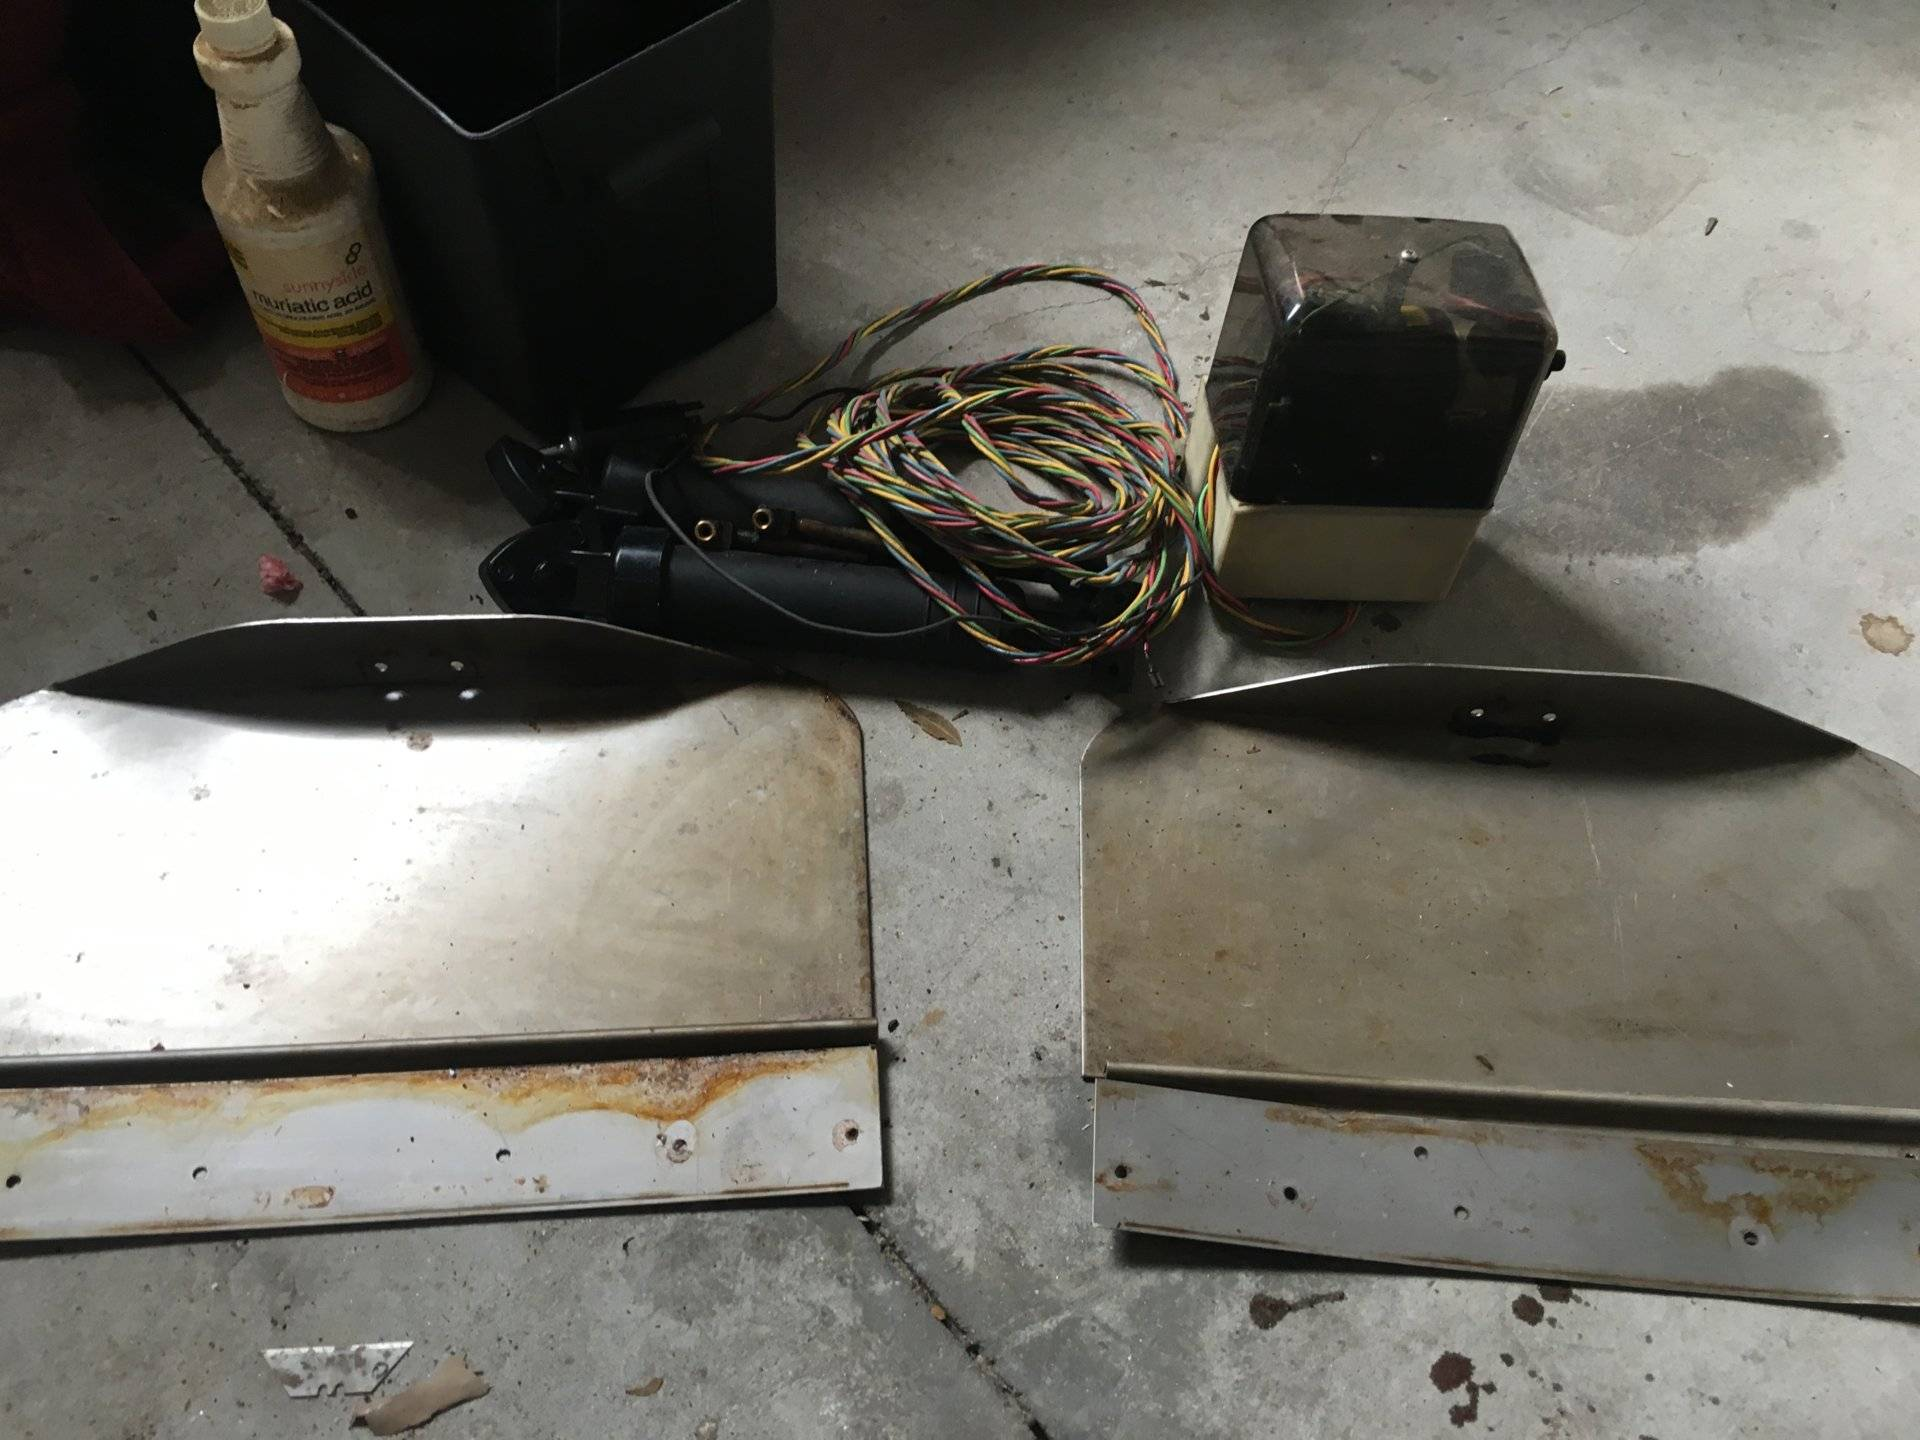 fs bennett tabs bait tank prop electronics anchors more si tex cvs 111 plotter fishfinder thru hull transducer worked great no wiring harness for an 18 pack cl s misc galvanized anchors some chain